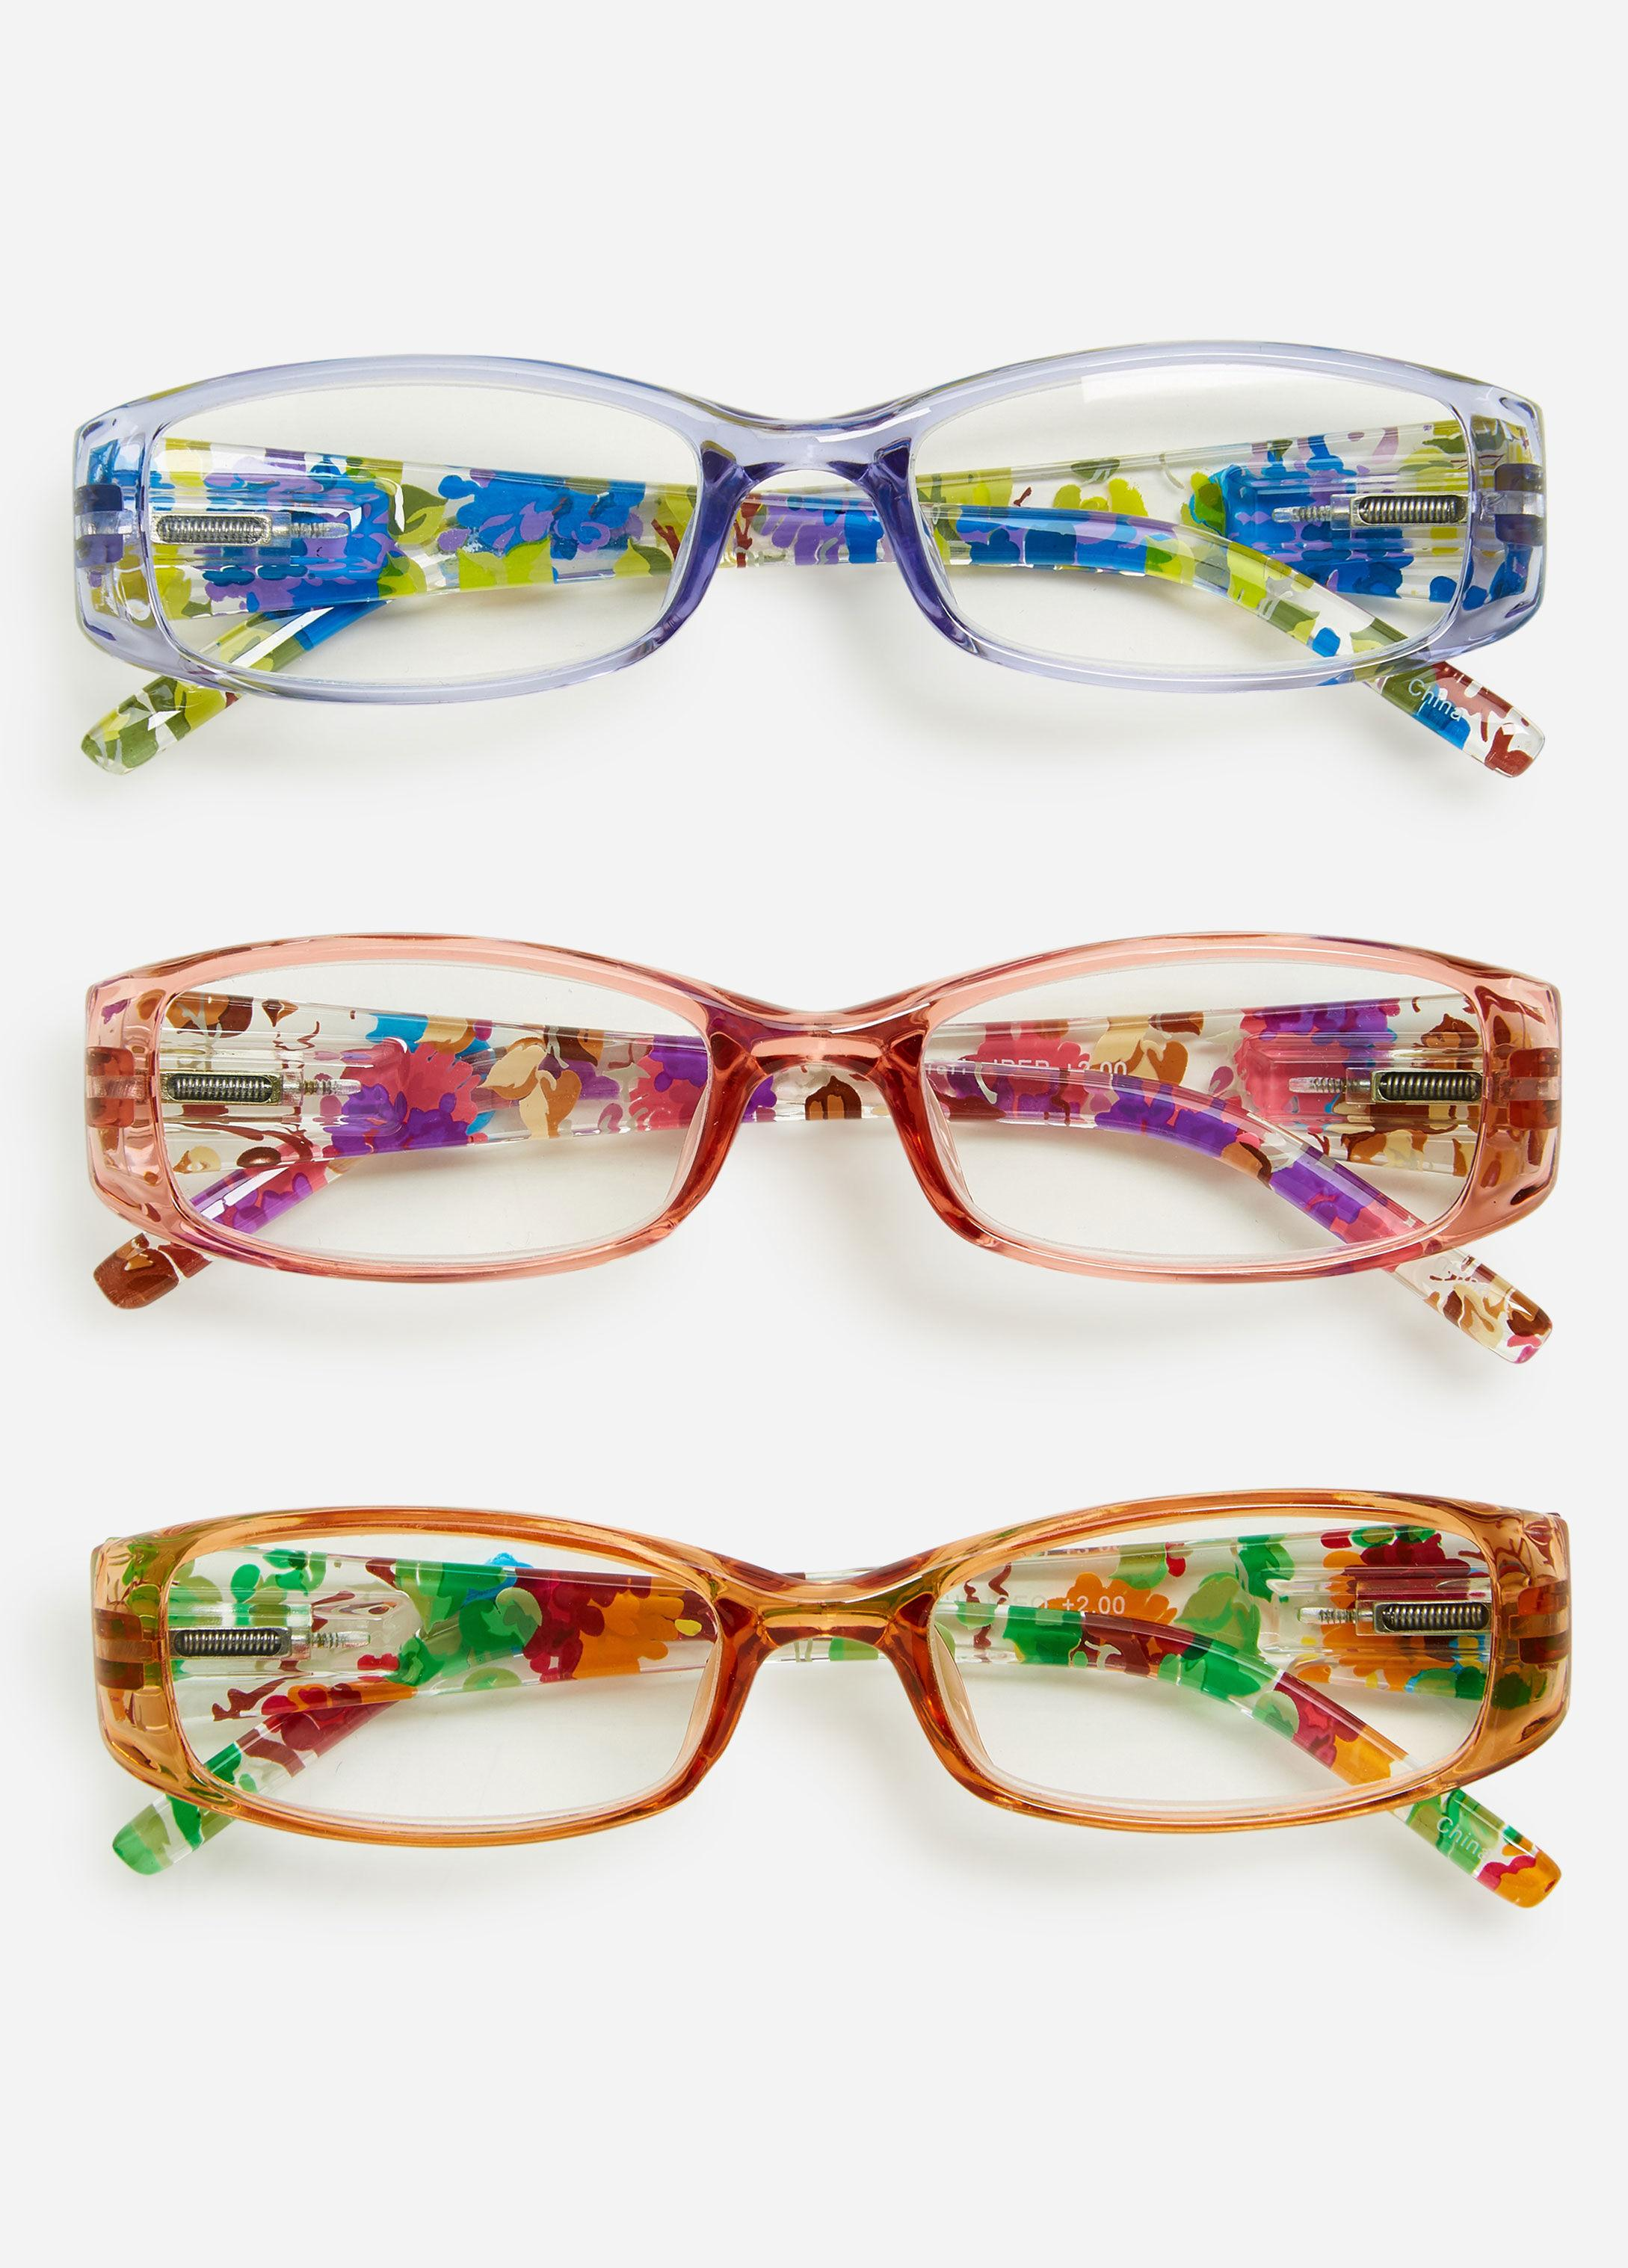 8a69d2c97b0 Lyst - Ashley Stewart Plus Size Square Multi Print Reading Glasses Set